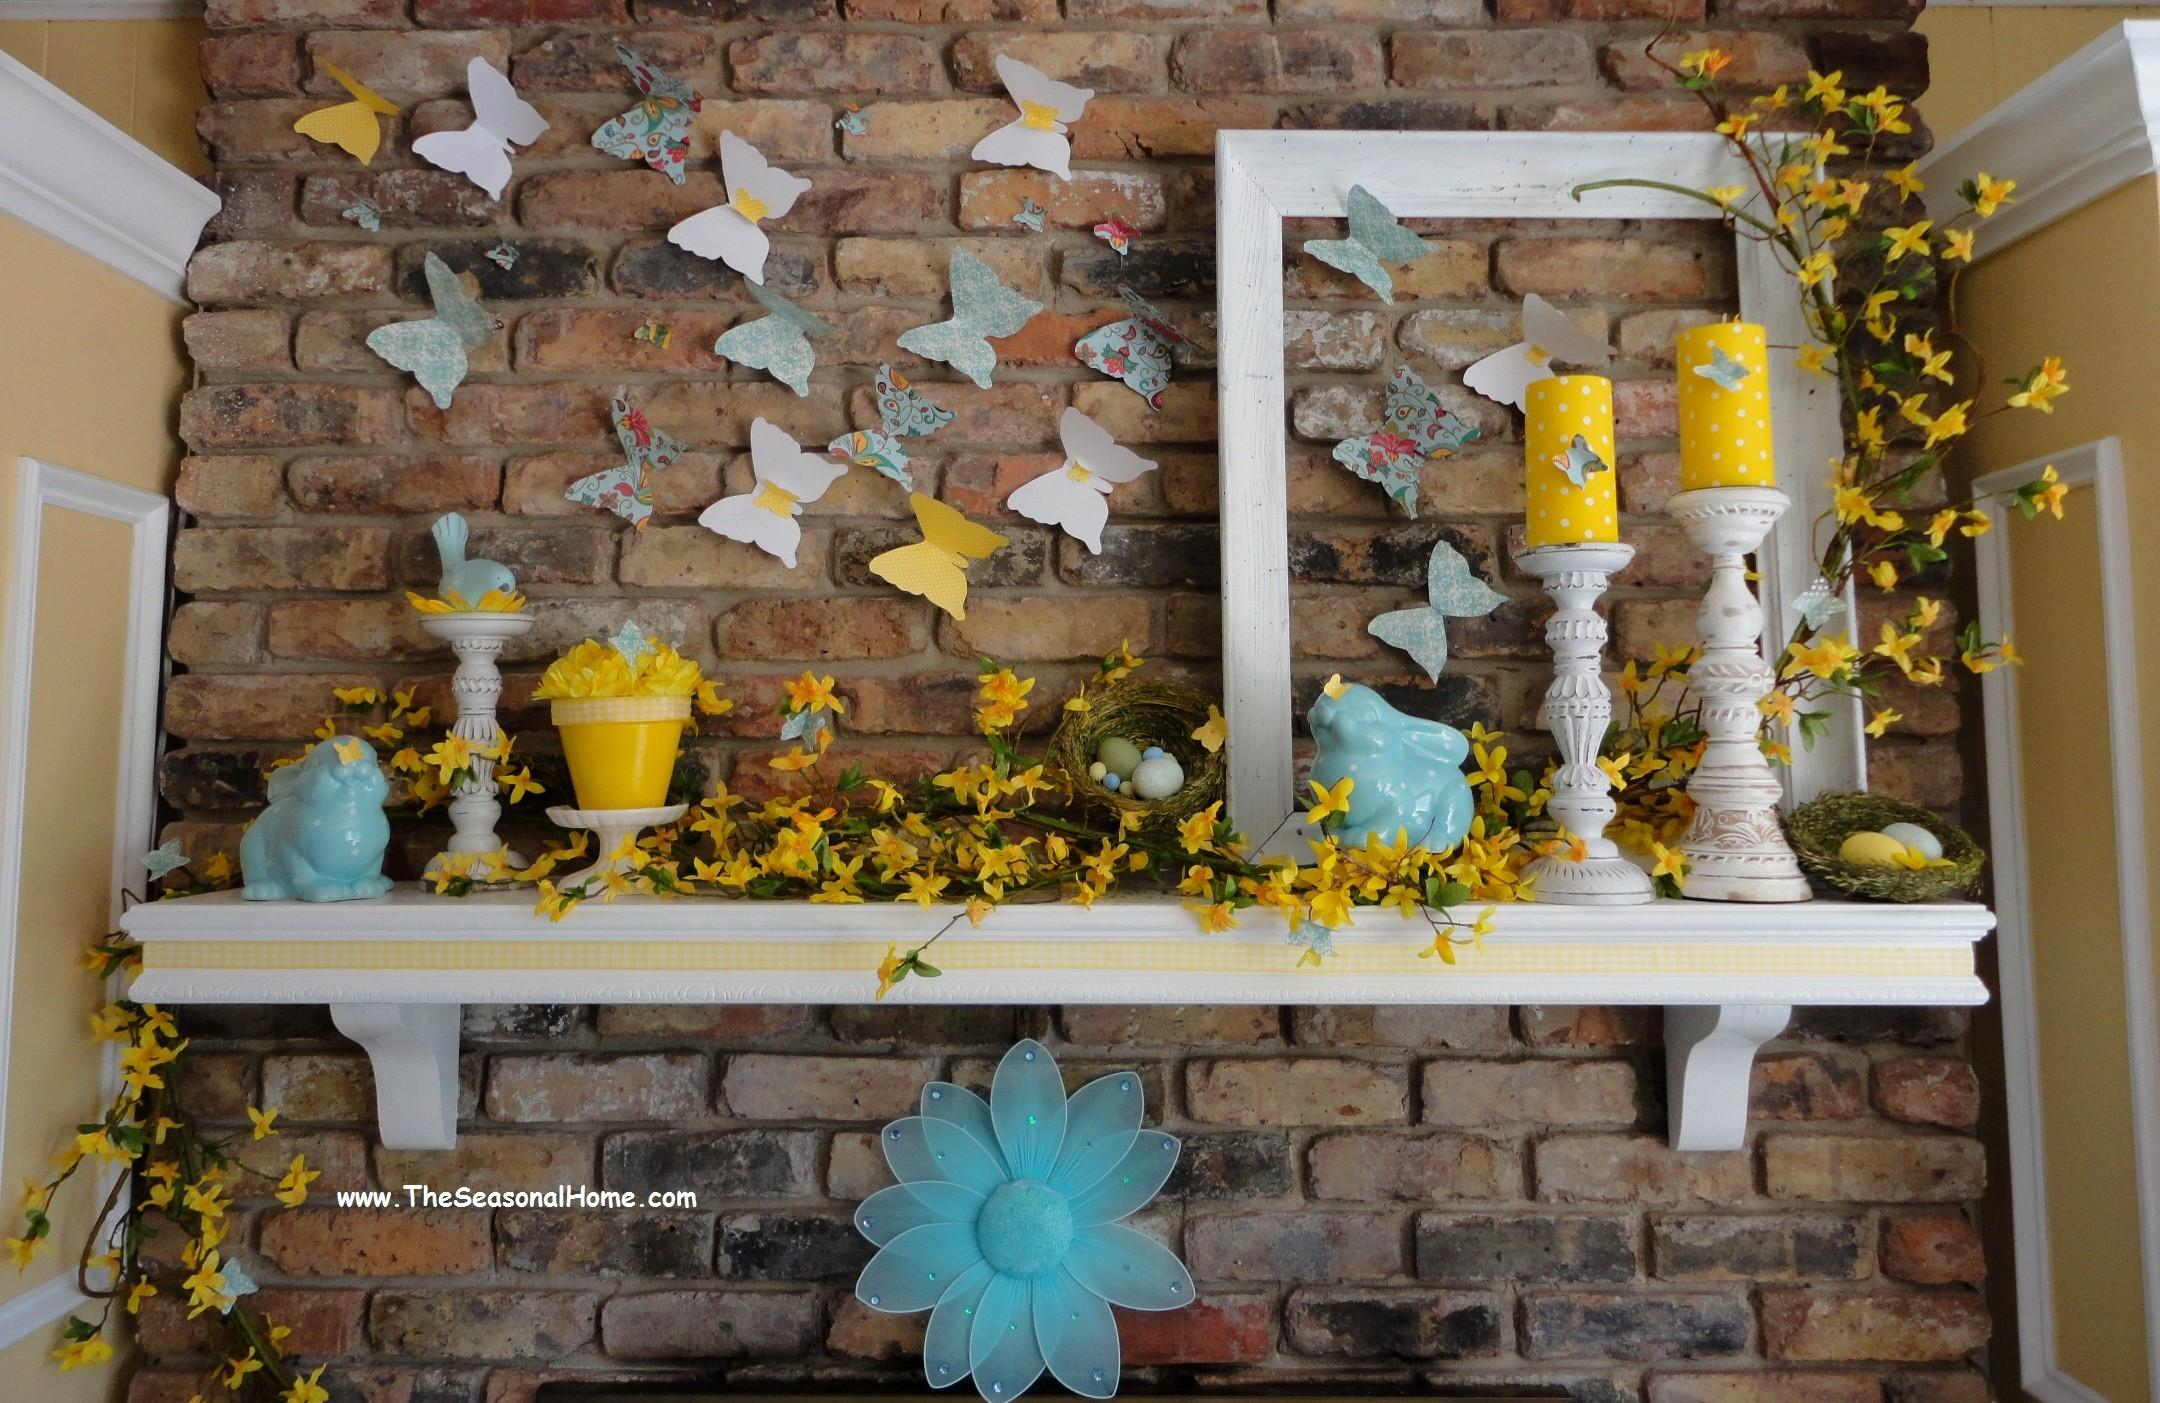 Easter Mantel Decorations Blog Fireplacemall